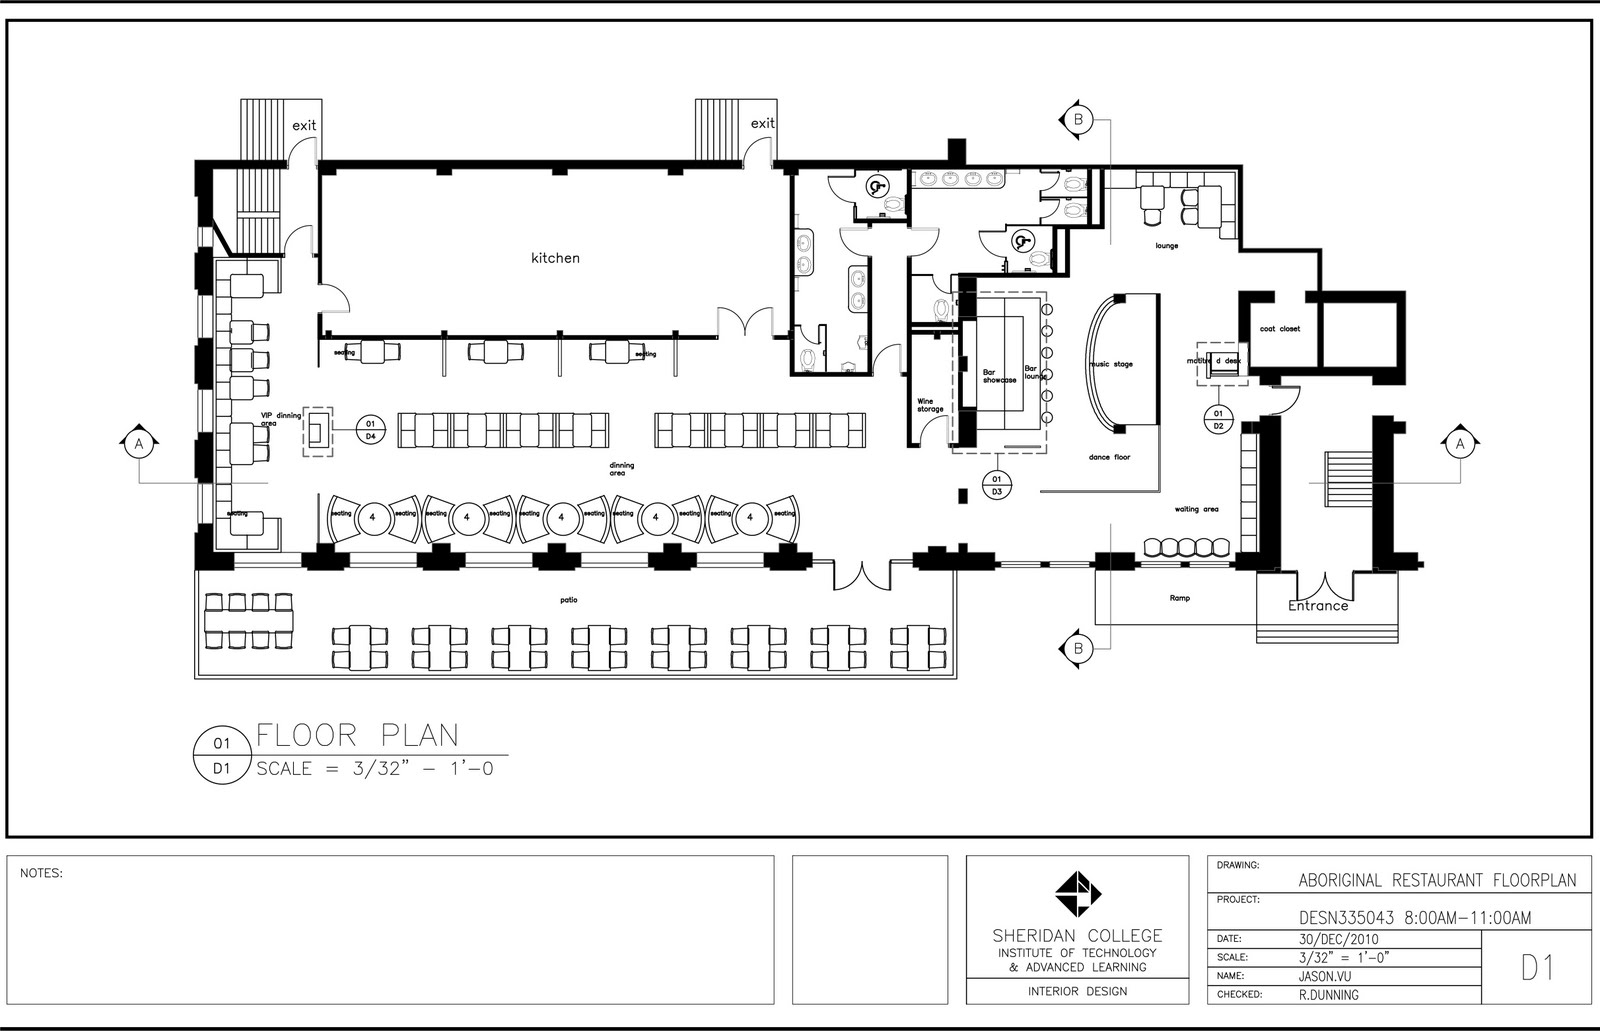 Kitchen Island Floor Plan restaurant kitchen layout plans blueprint for kitchen island